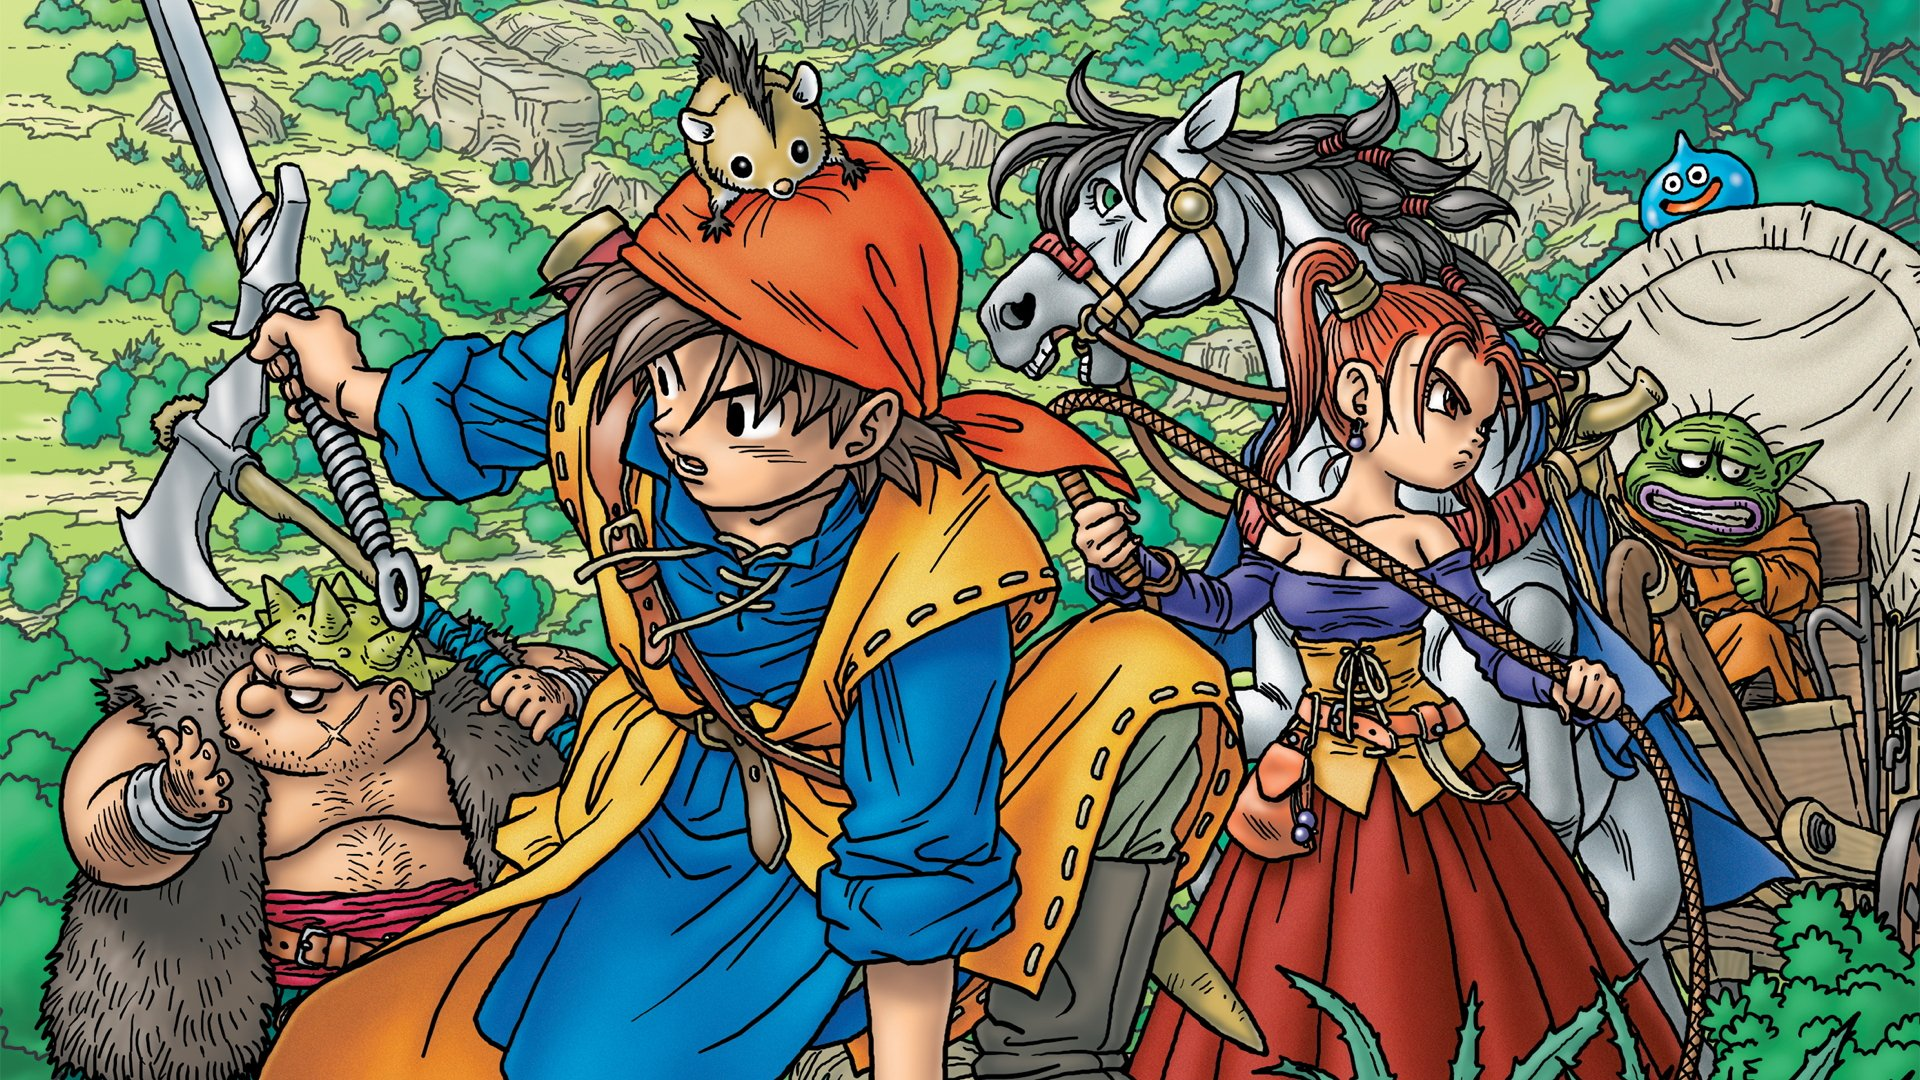 Does Anyone Have Any Good 1920x1080 DQ Wallpapers  Dragonquest